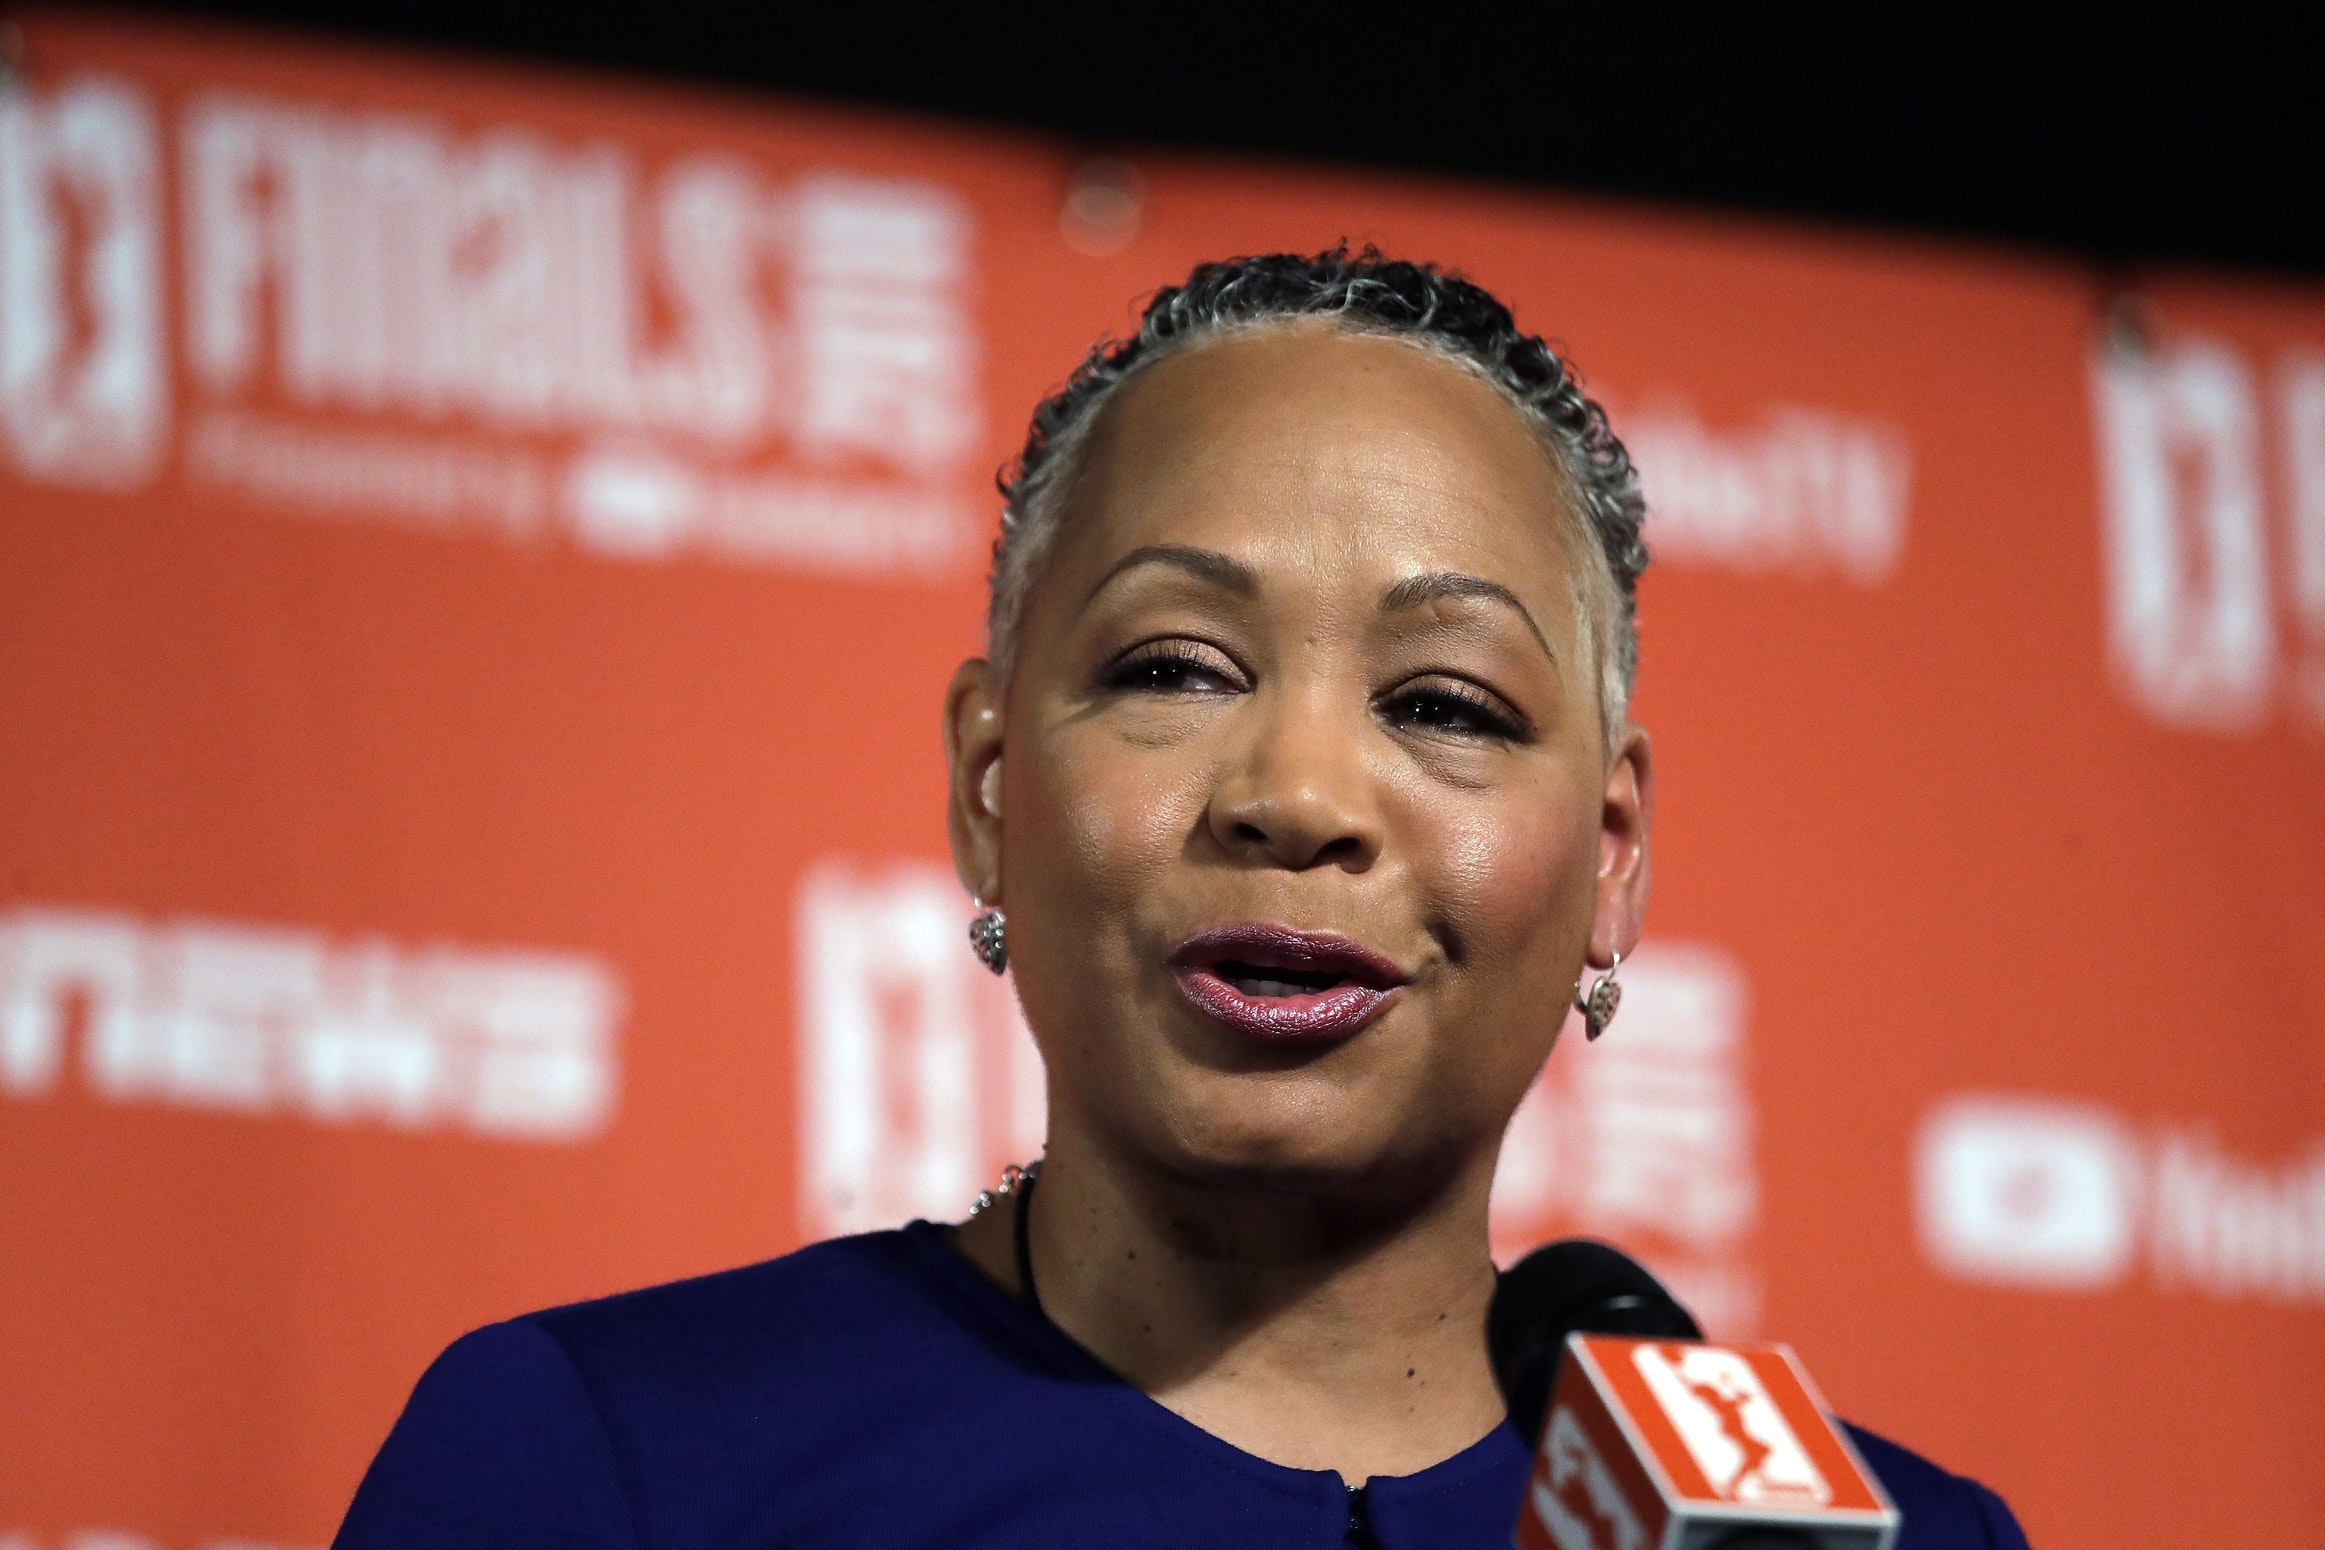 Times Up CEO Lisa Borders